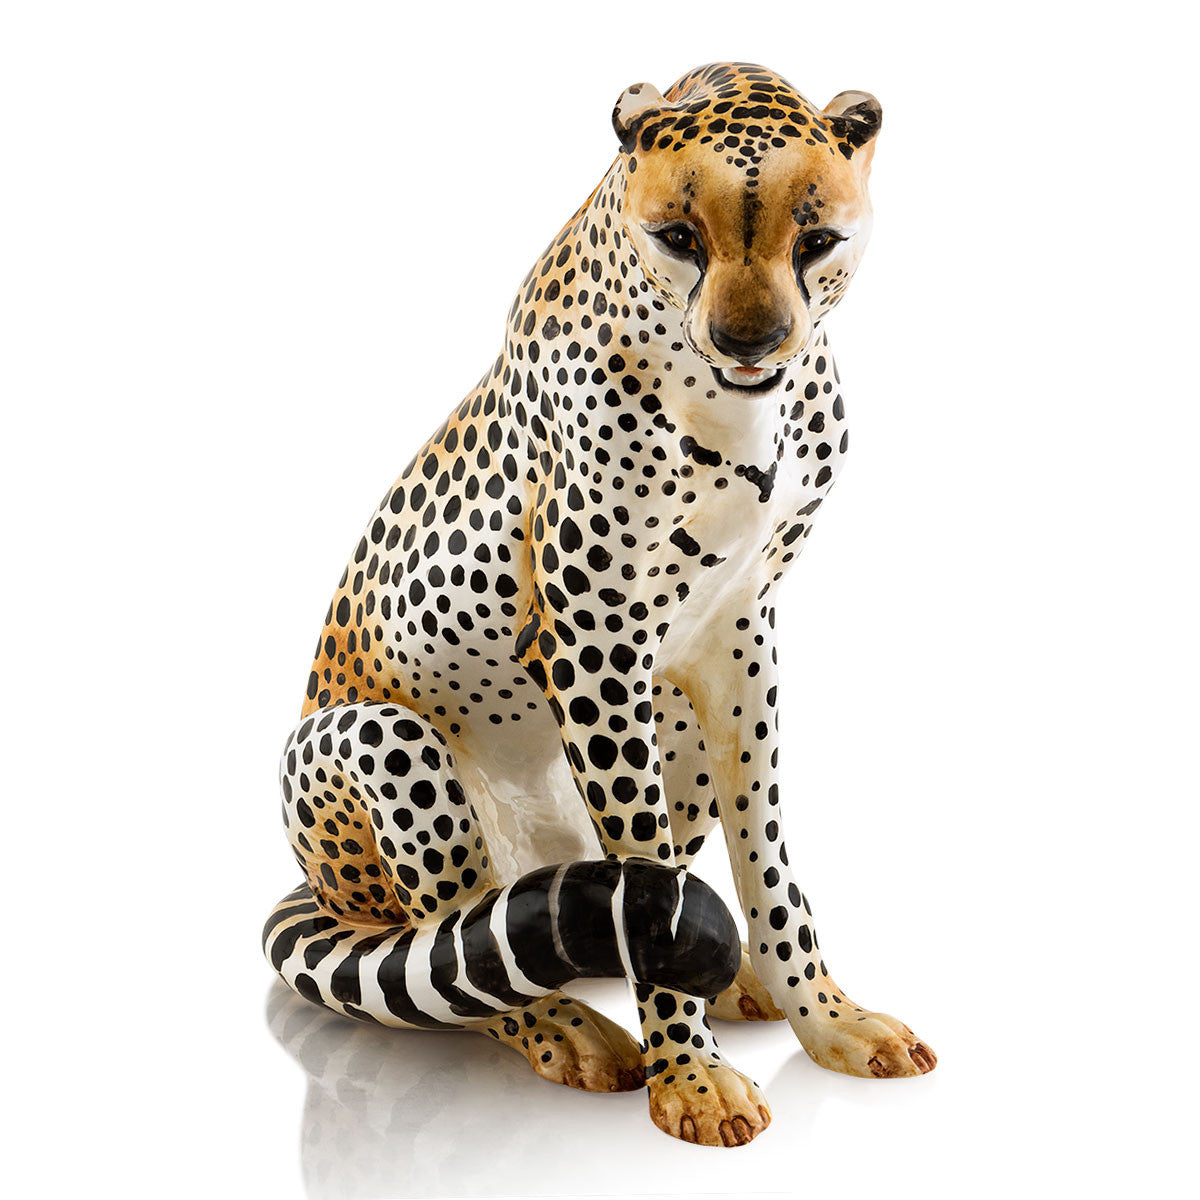 Ceramic sitting cheetah statue with lifelike details